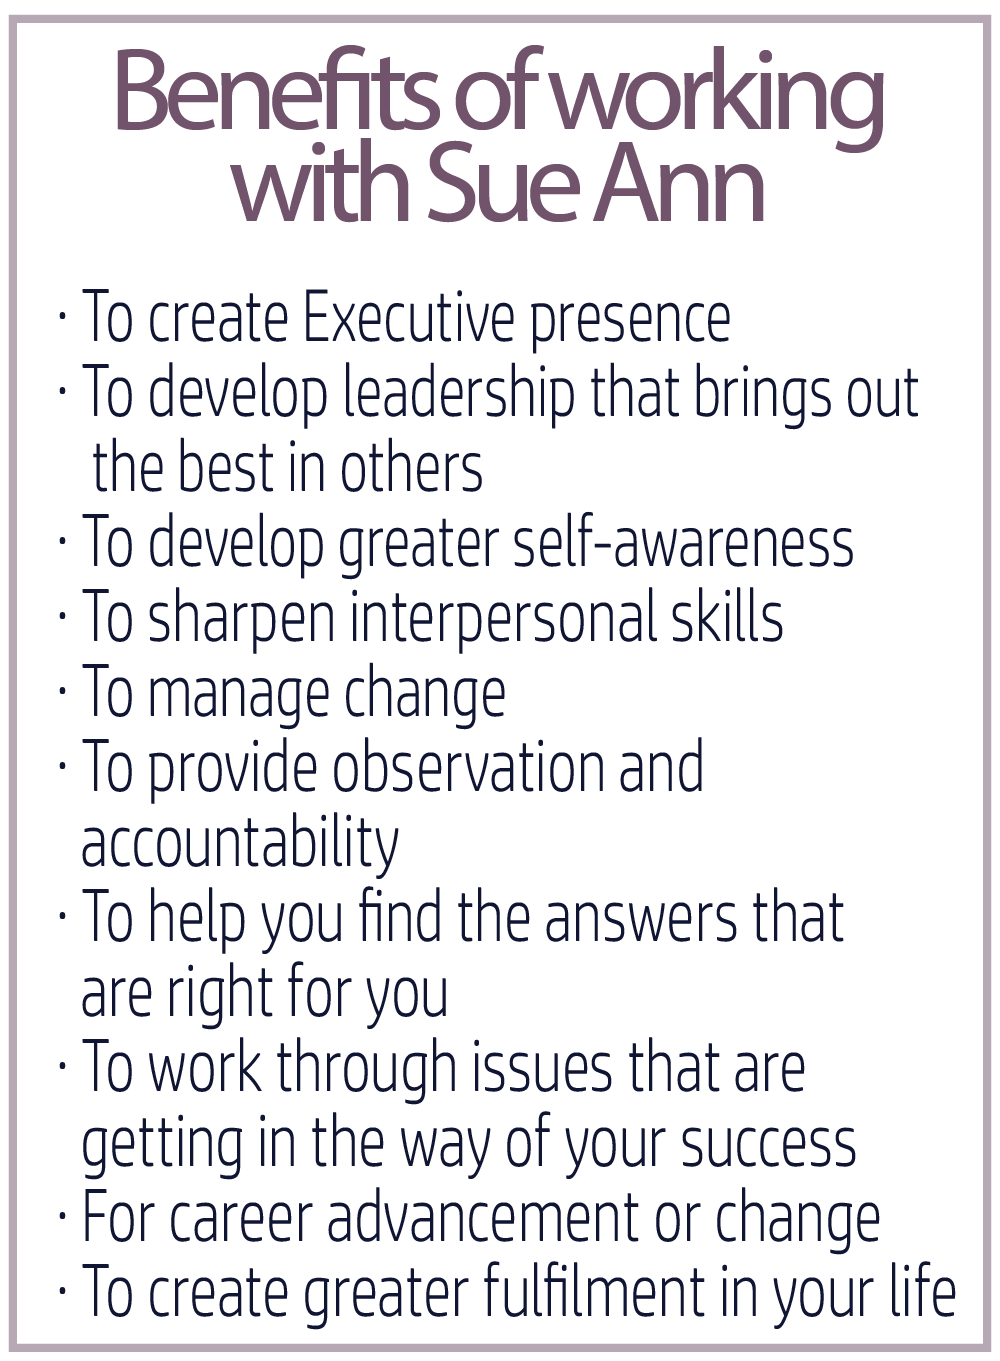 Benefits of using Sue Ann_Benefits of working with Sue Ann.png